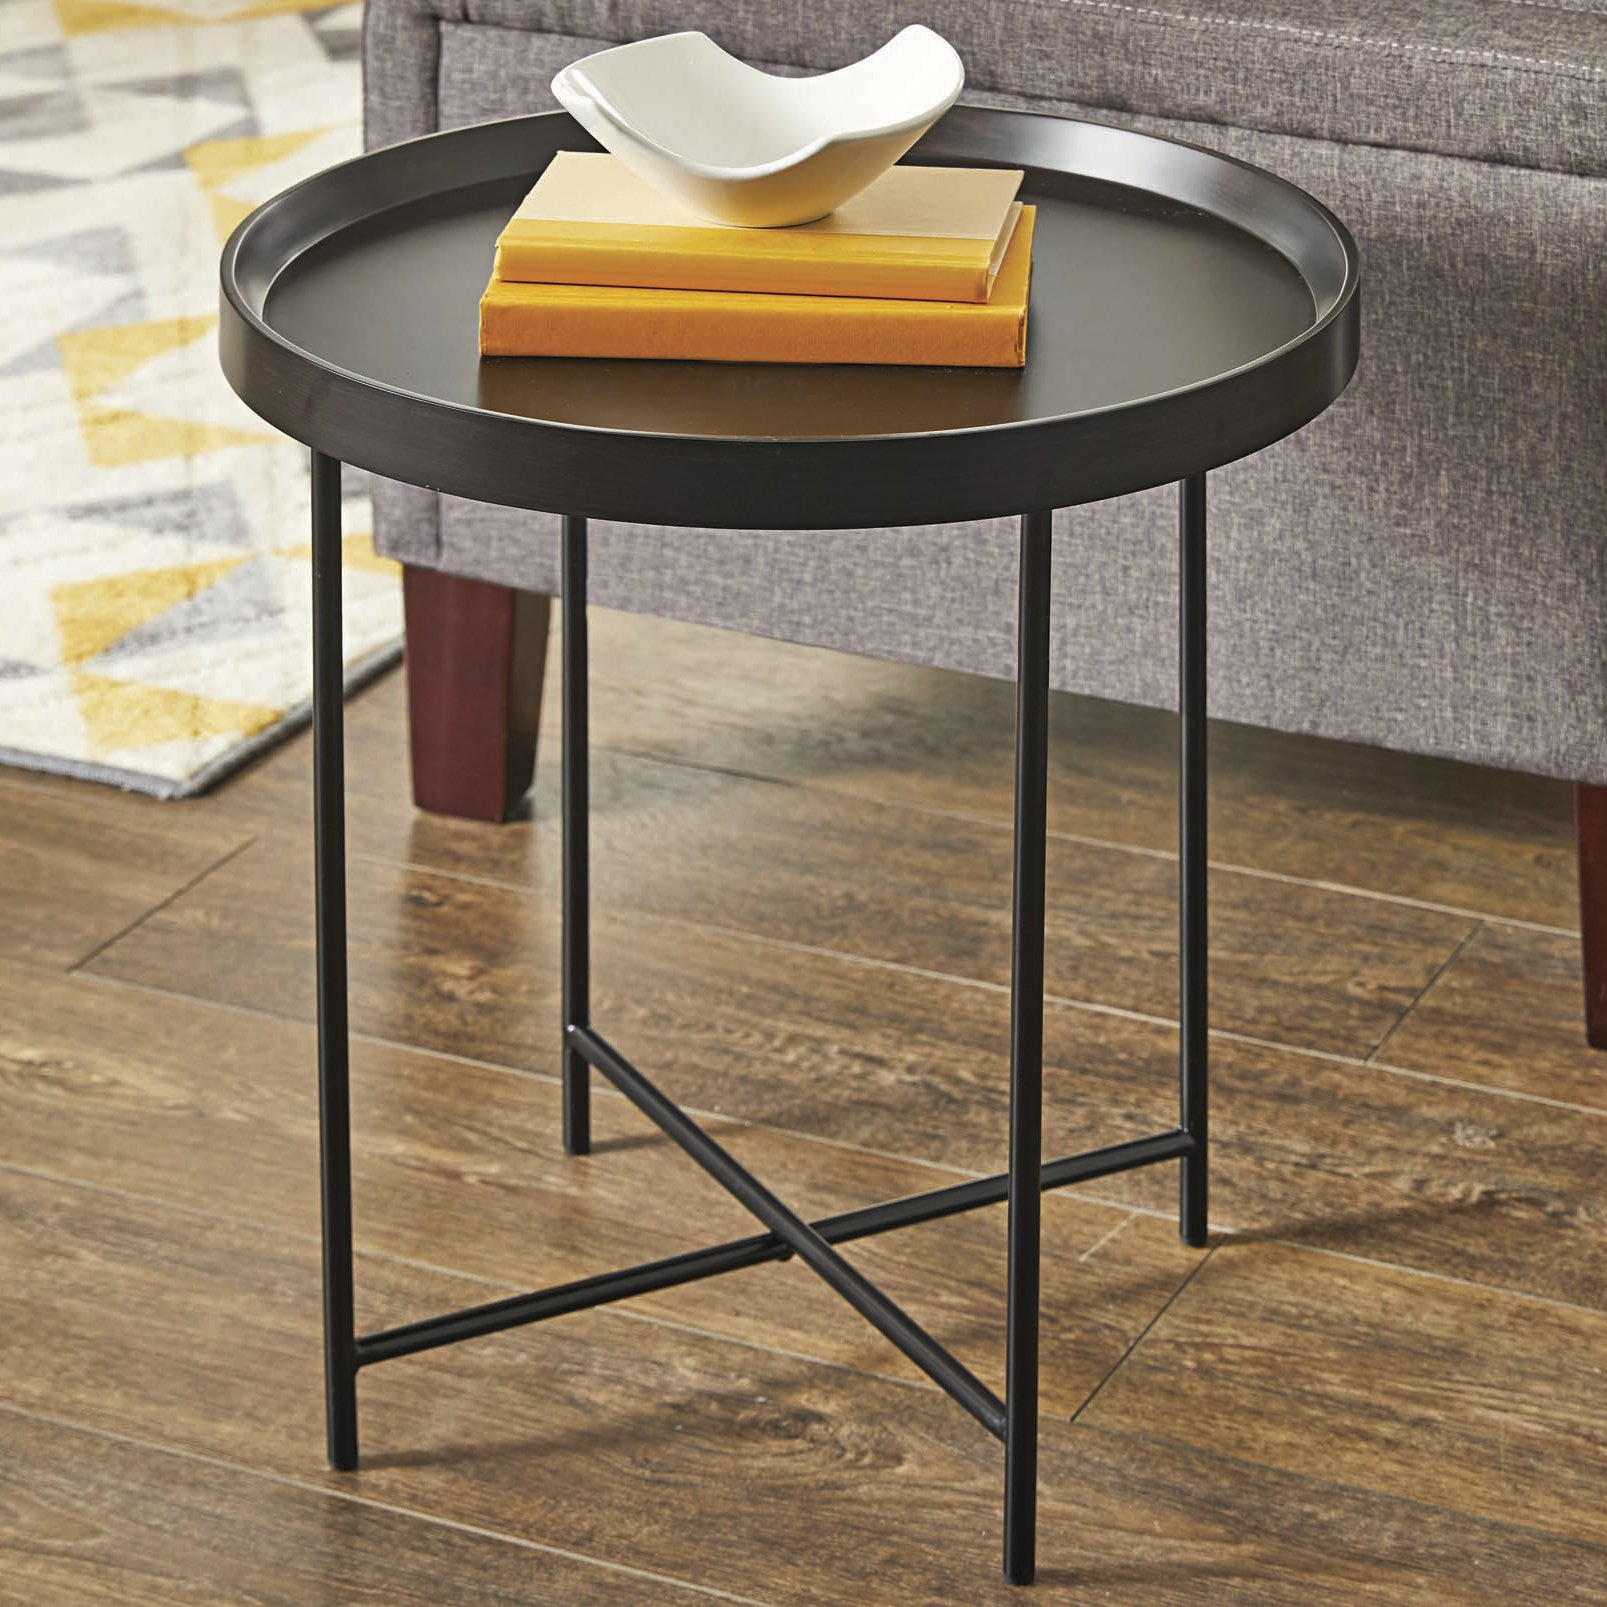 Better Homes and Gardens Montclair Round Accent Table, Black Finish